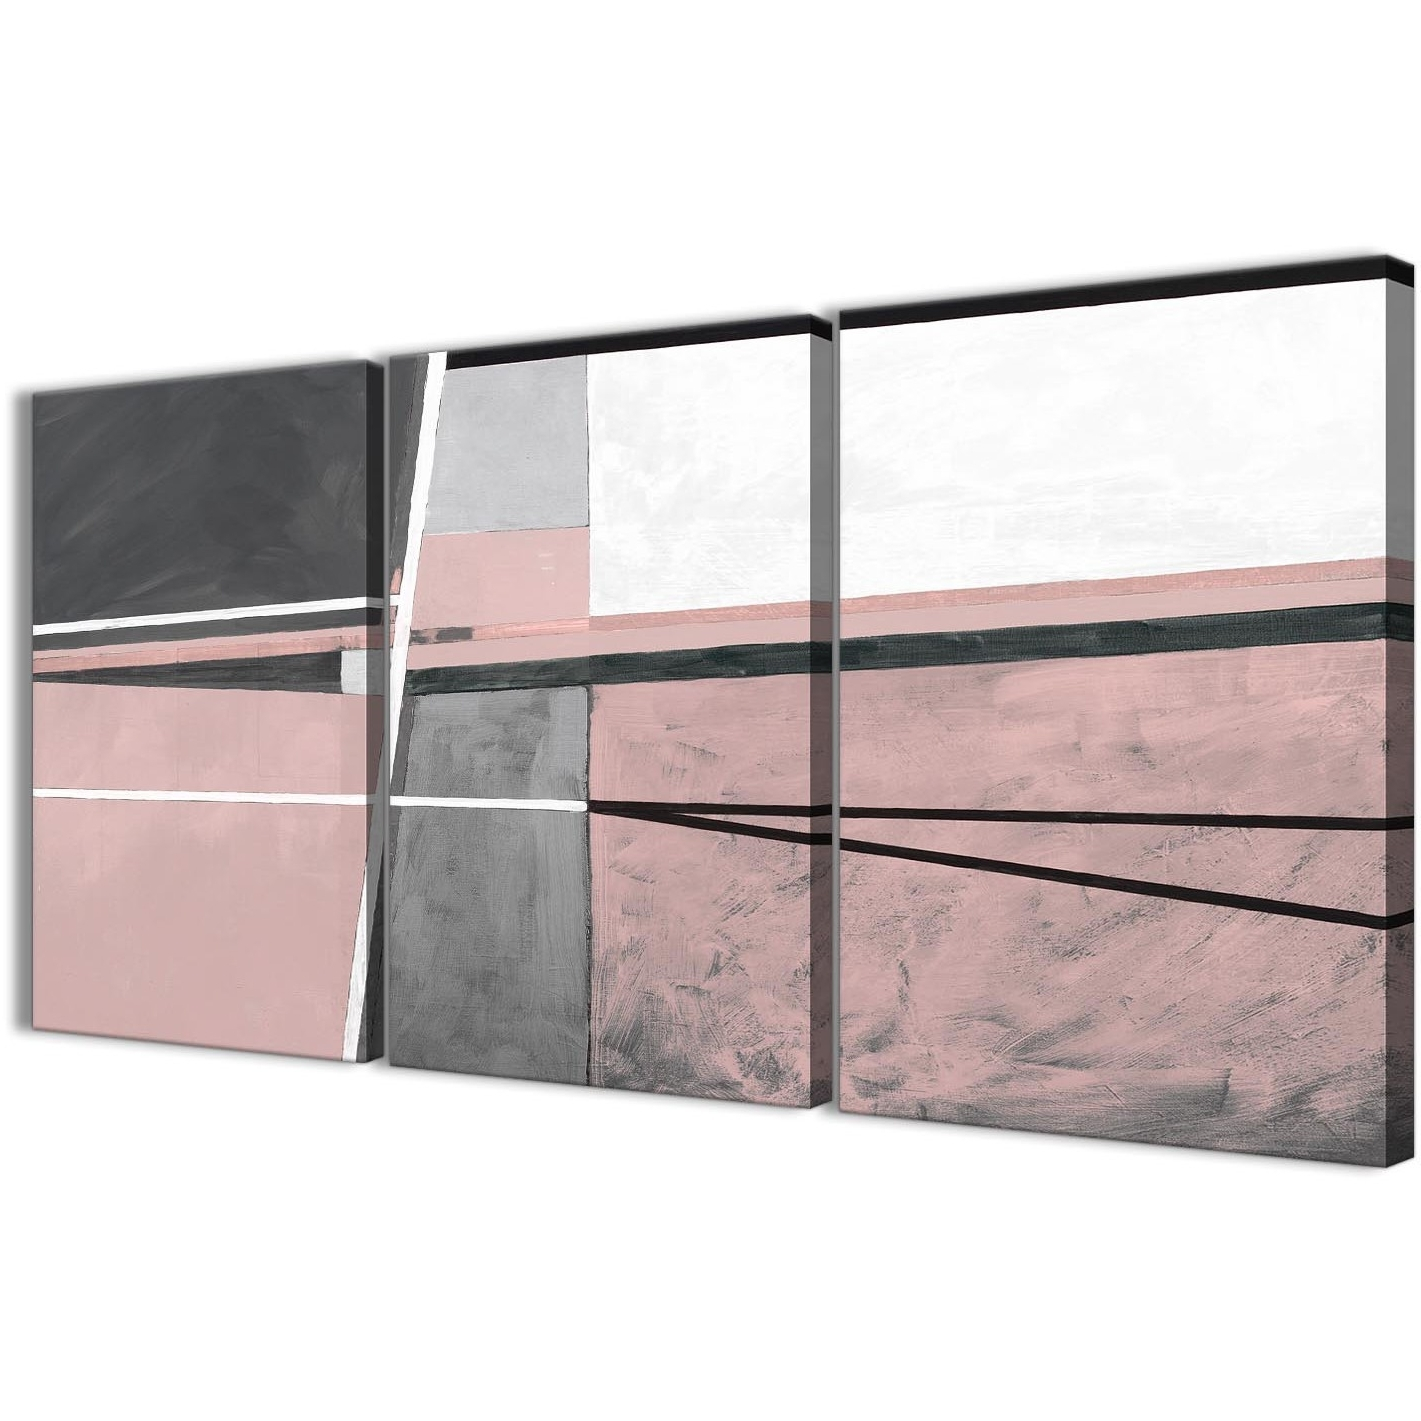 Best And Newest Grey Wall Art For 3 Panel Blush Pink Grey Painting Kitchen Canvas Wall Art Accessories (View 17 of 20)